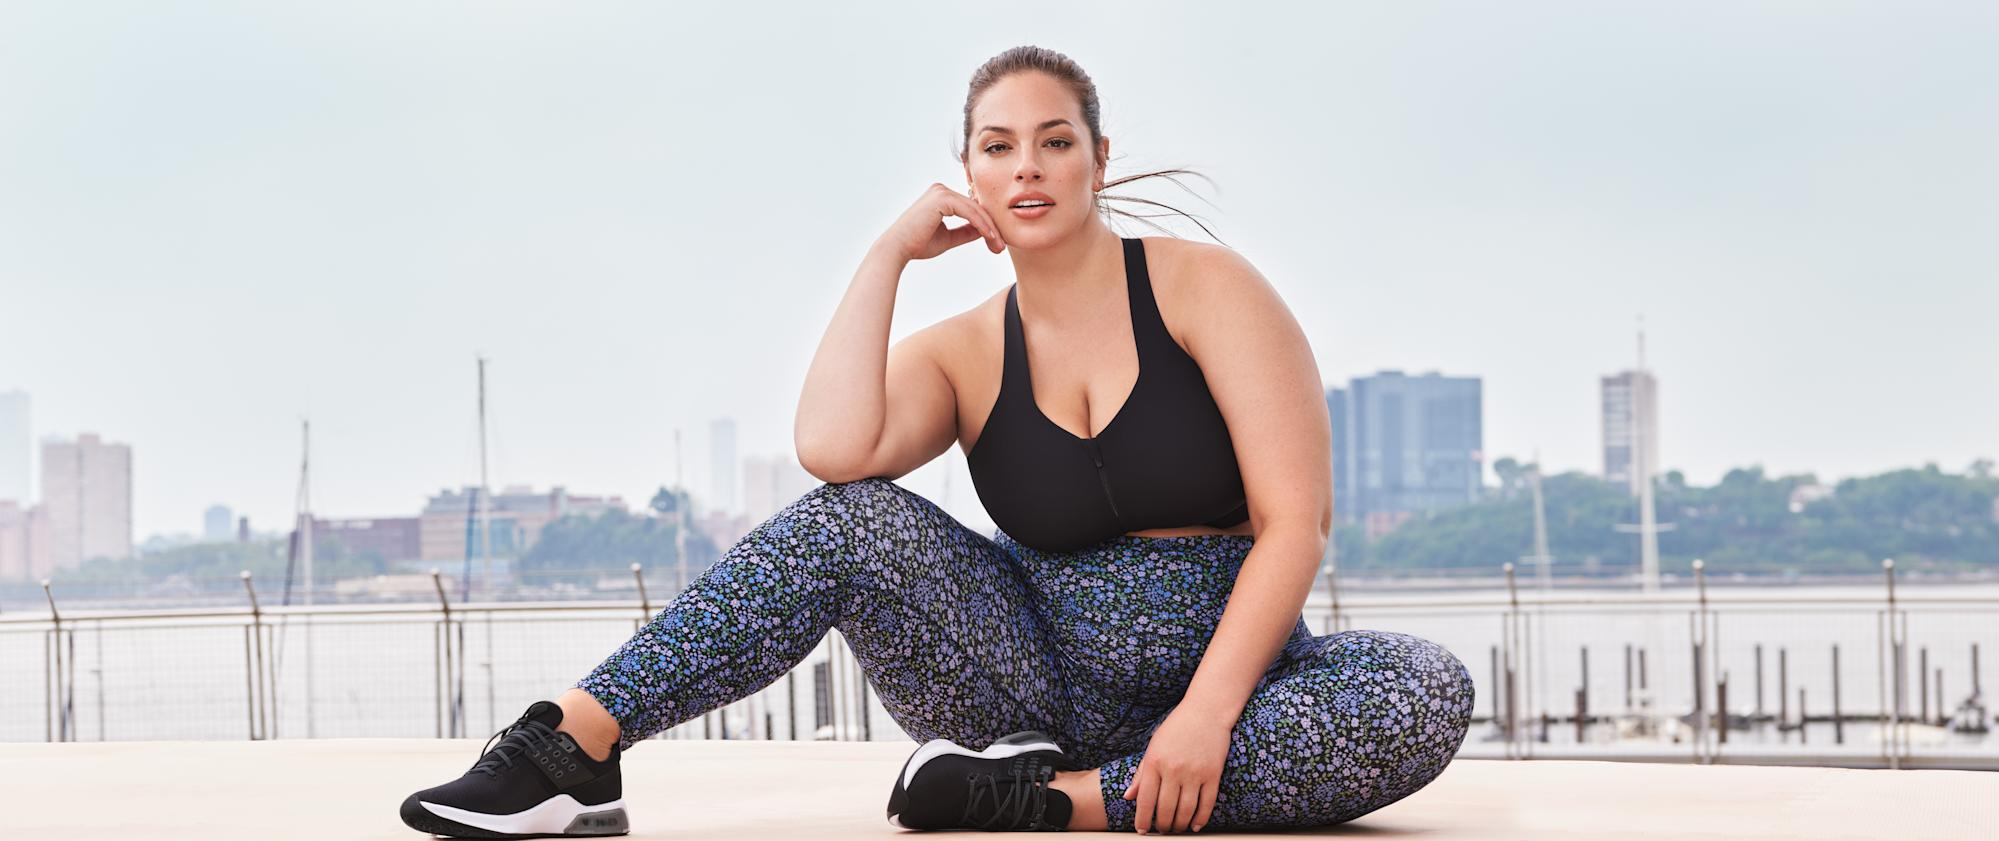 Ashley Graham teams up with Canadian lingerie brand Knix for their new activewear line